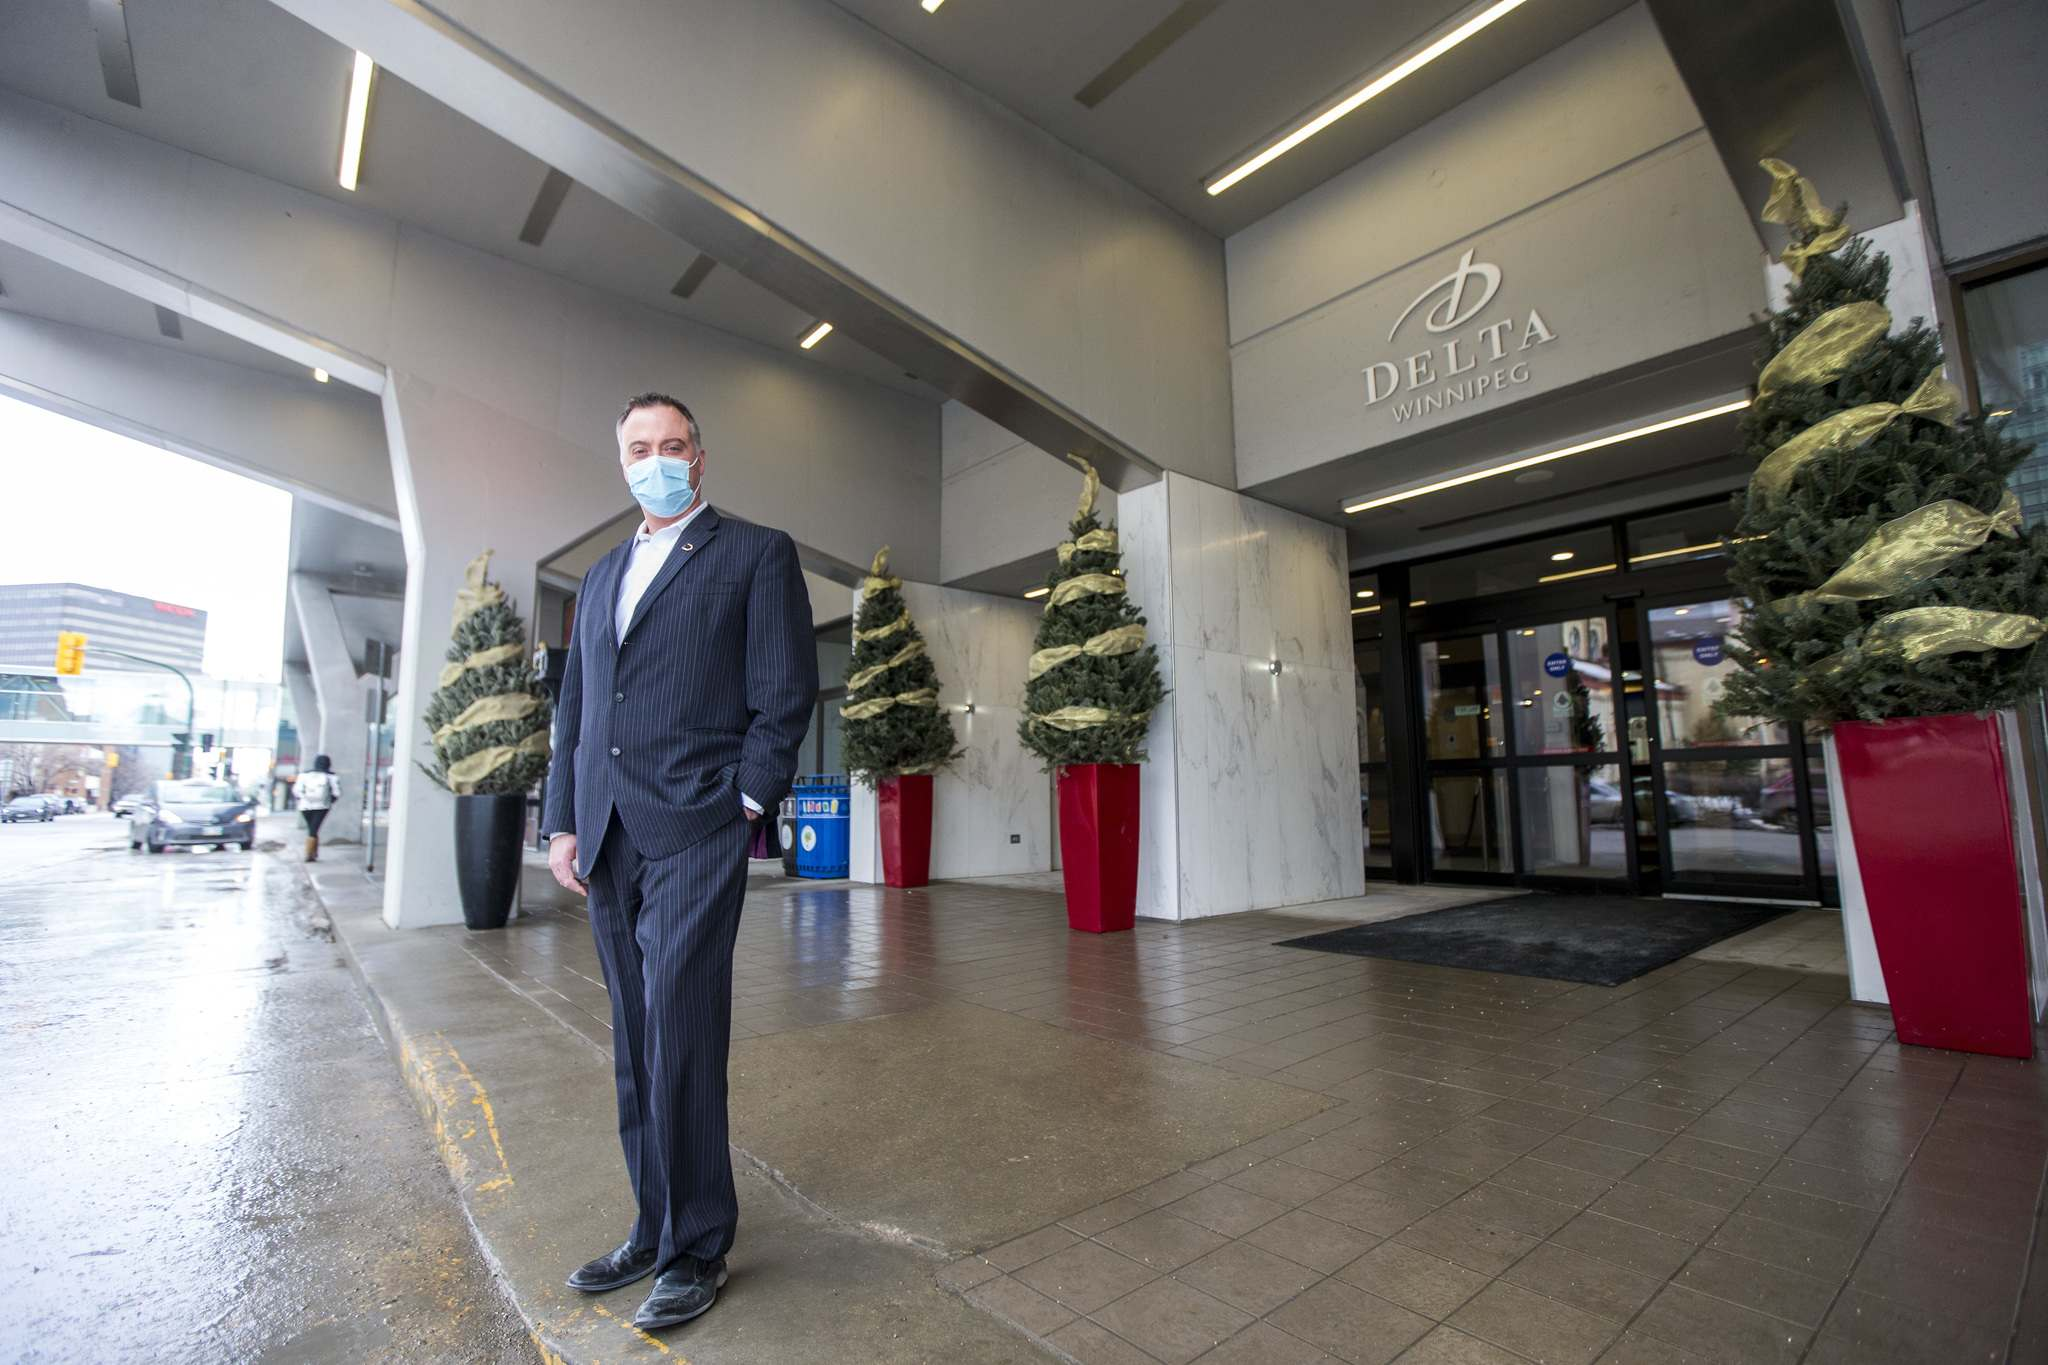 Jeff Kennedy, general manager of the Delta Hotel, had high hopes for 2020 after a booming year in 2019. But then mid-March hit and business all but vanished. (Mikaela MacKenzie / Winnipeg Free Press)